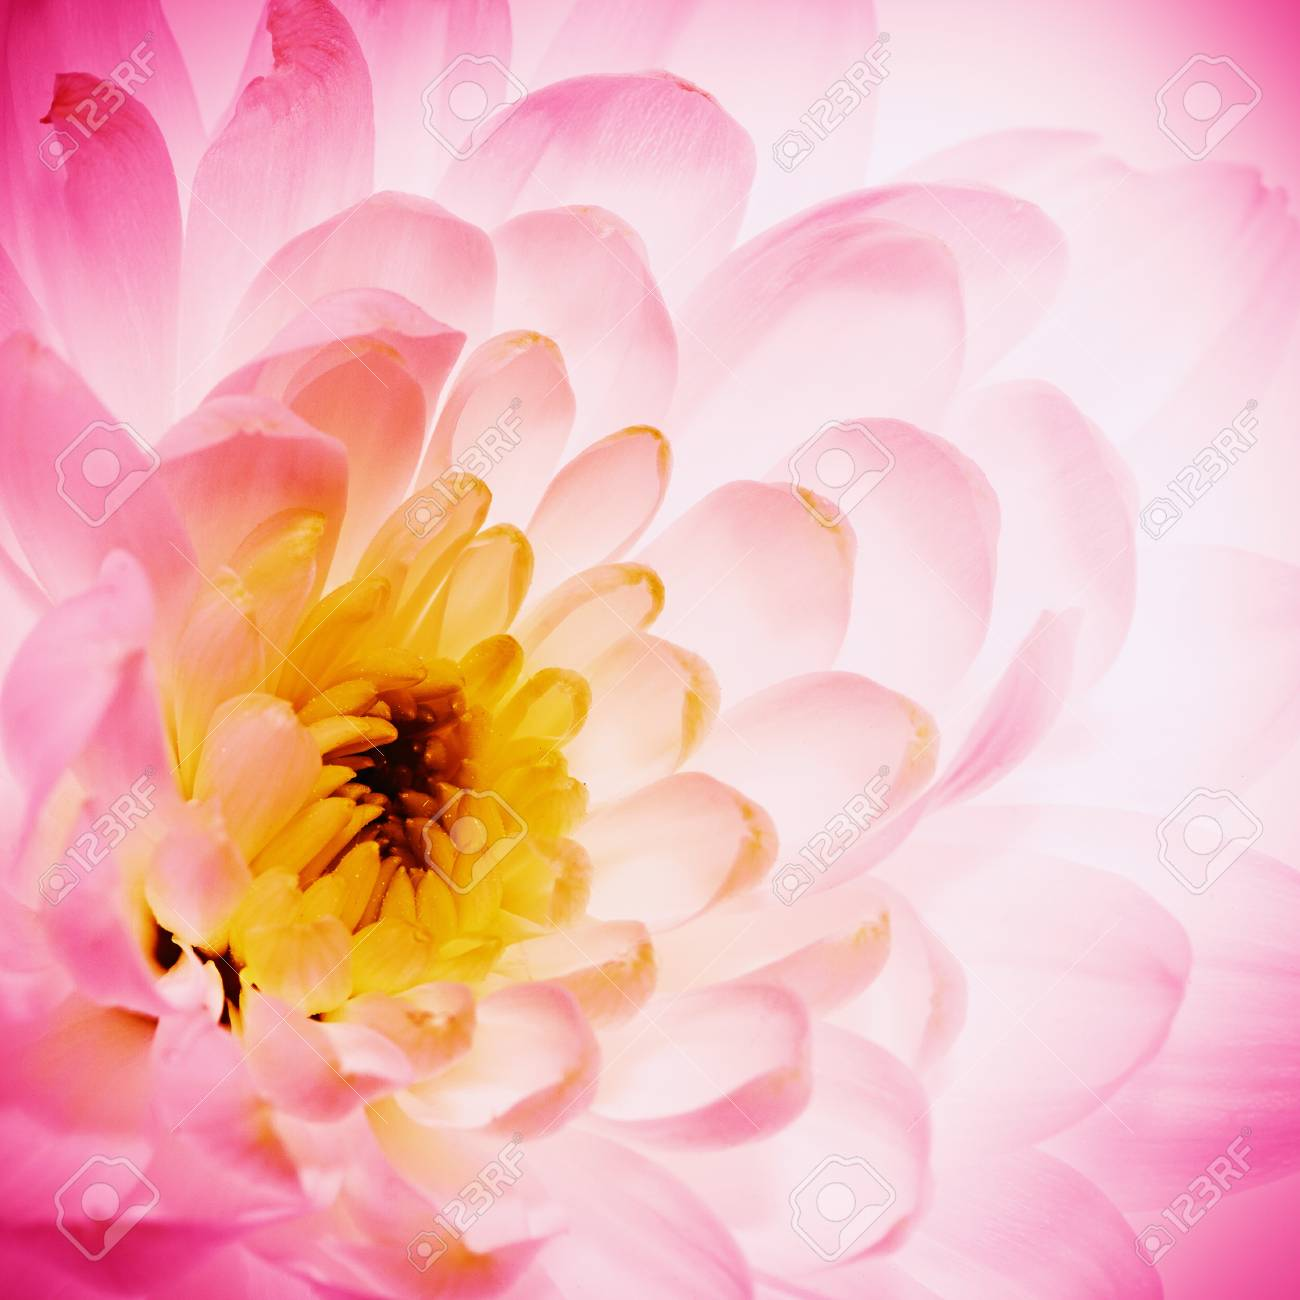 Lotus Flower Petals As Abstract Natural Backgrounds Stock Photo